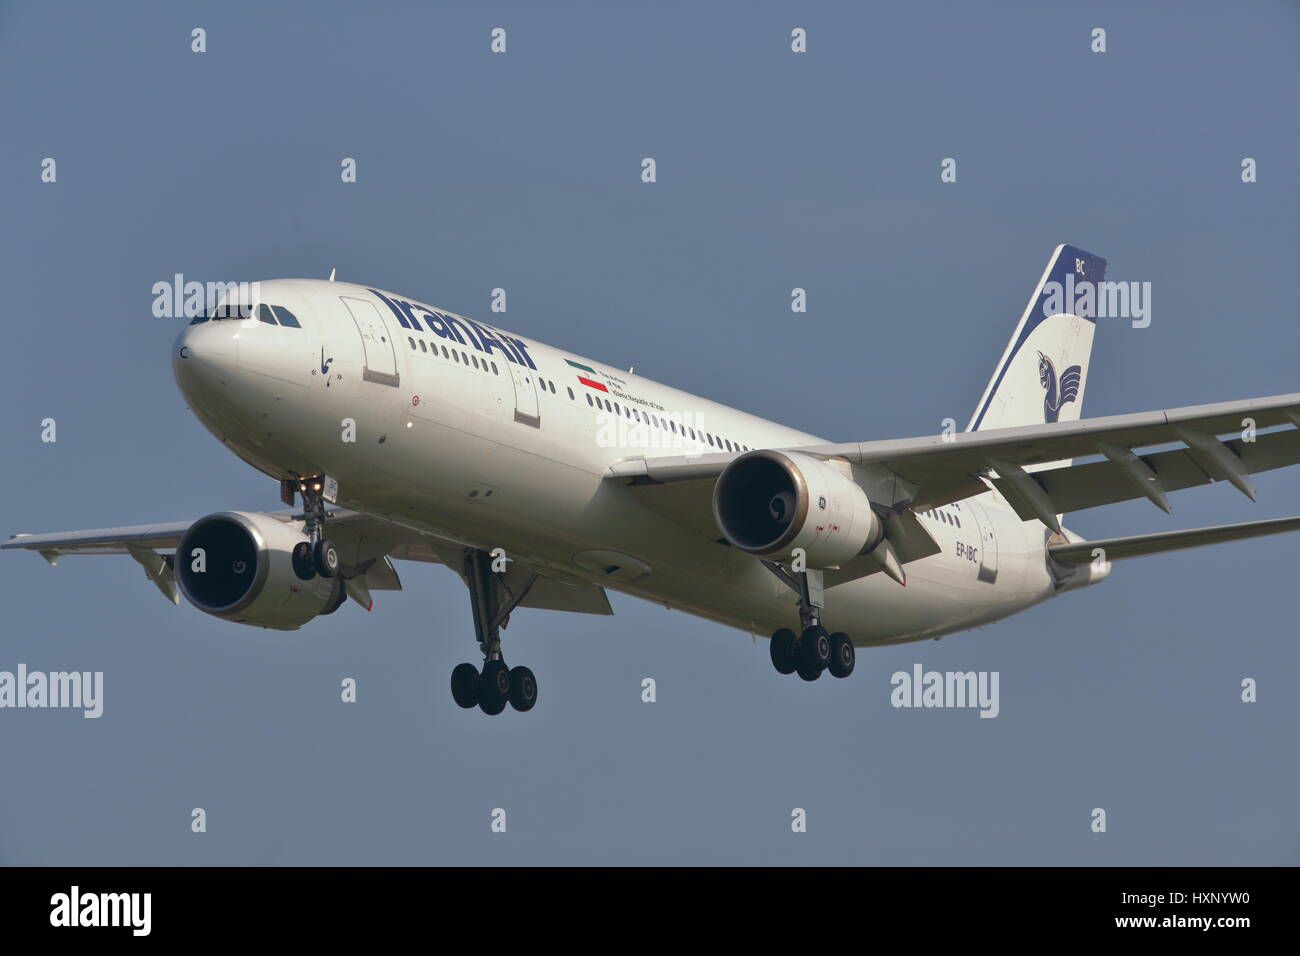 Ibc stock photos ibc stock images alamy - Iran air office in london ...